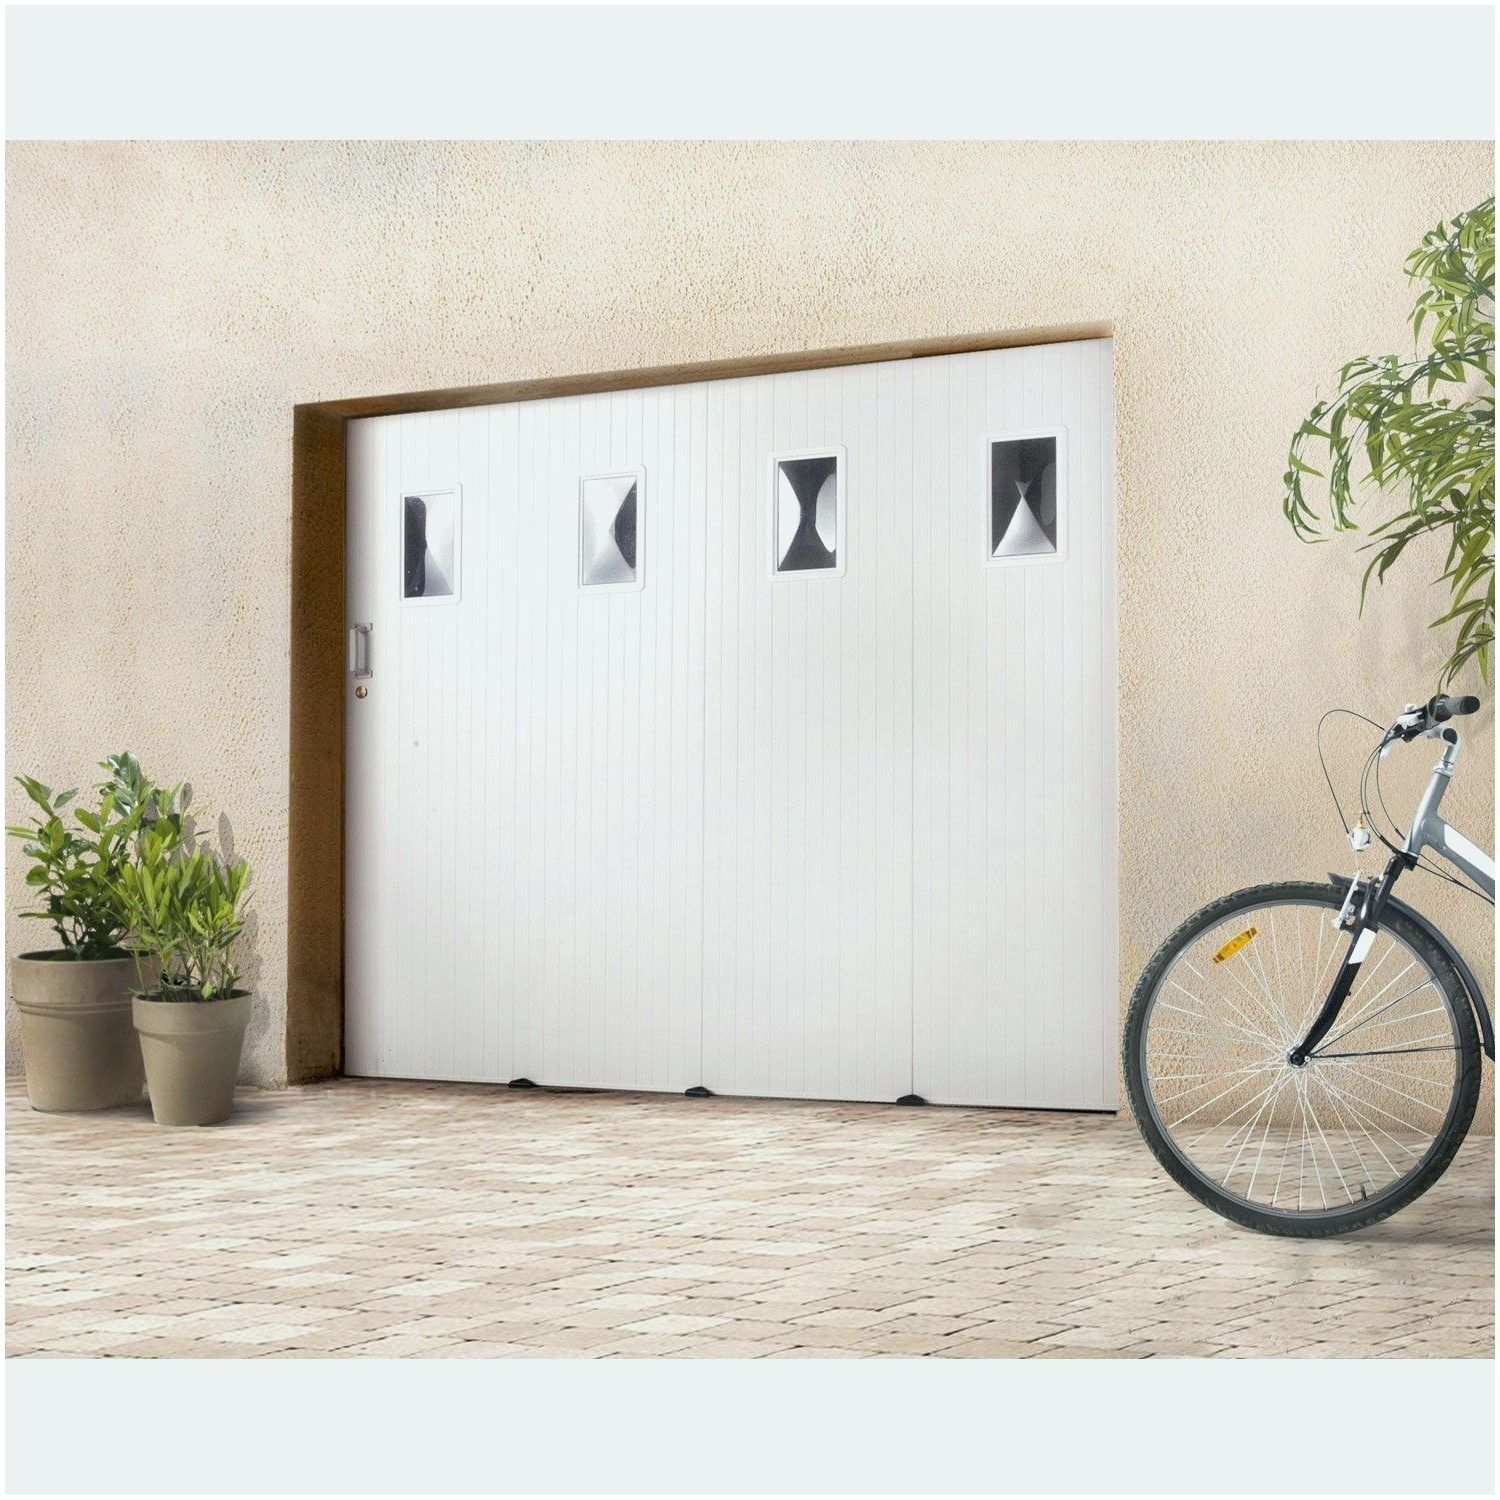 Elegant Bricodepot Barbecue Idees De Maison Garage Doors Outdoor Decor Et Home Decor